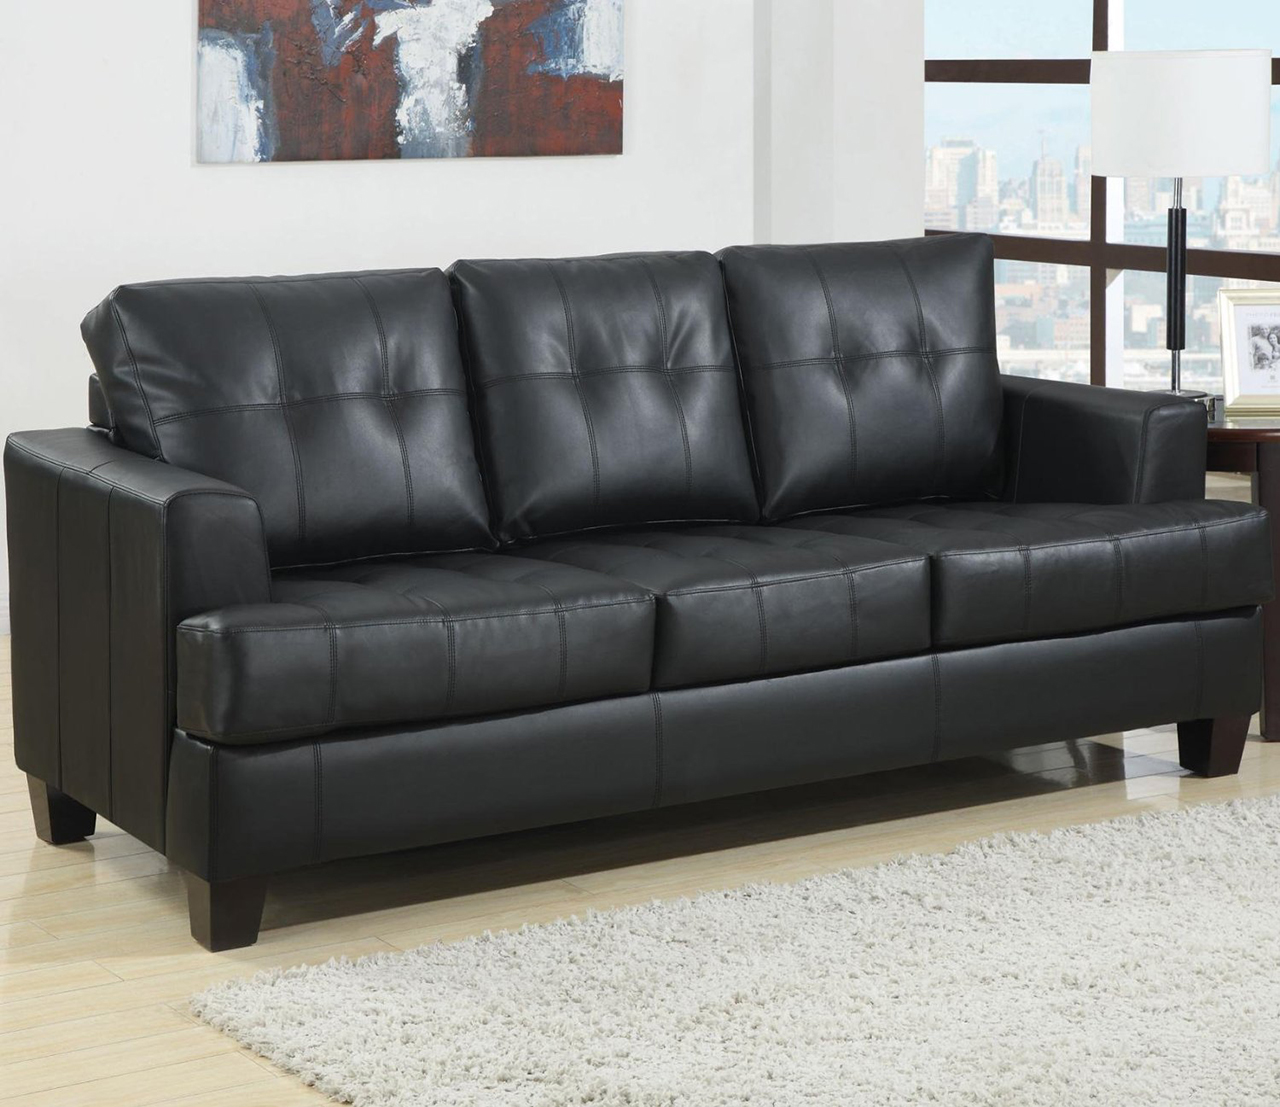 best sleeper sofa beds to buy in  - sleeper sofa  coaster home furnishings contemporary sleeper black